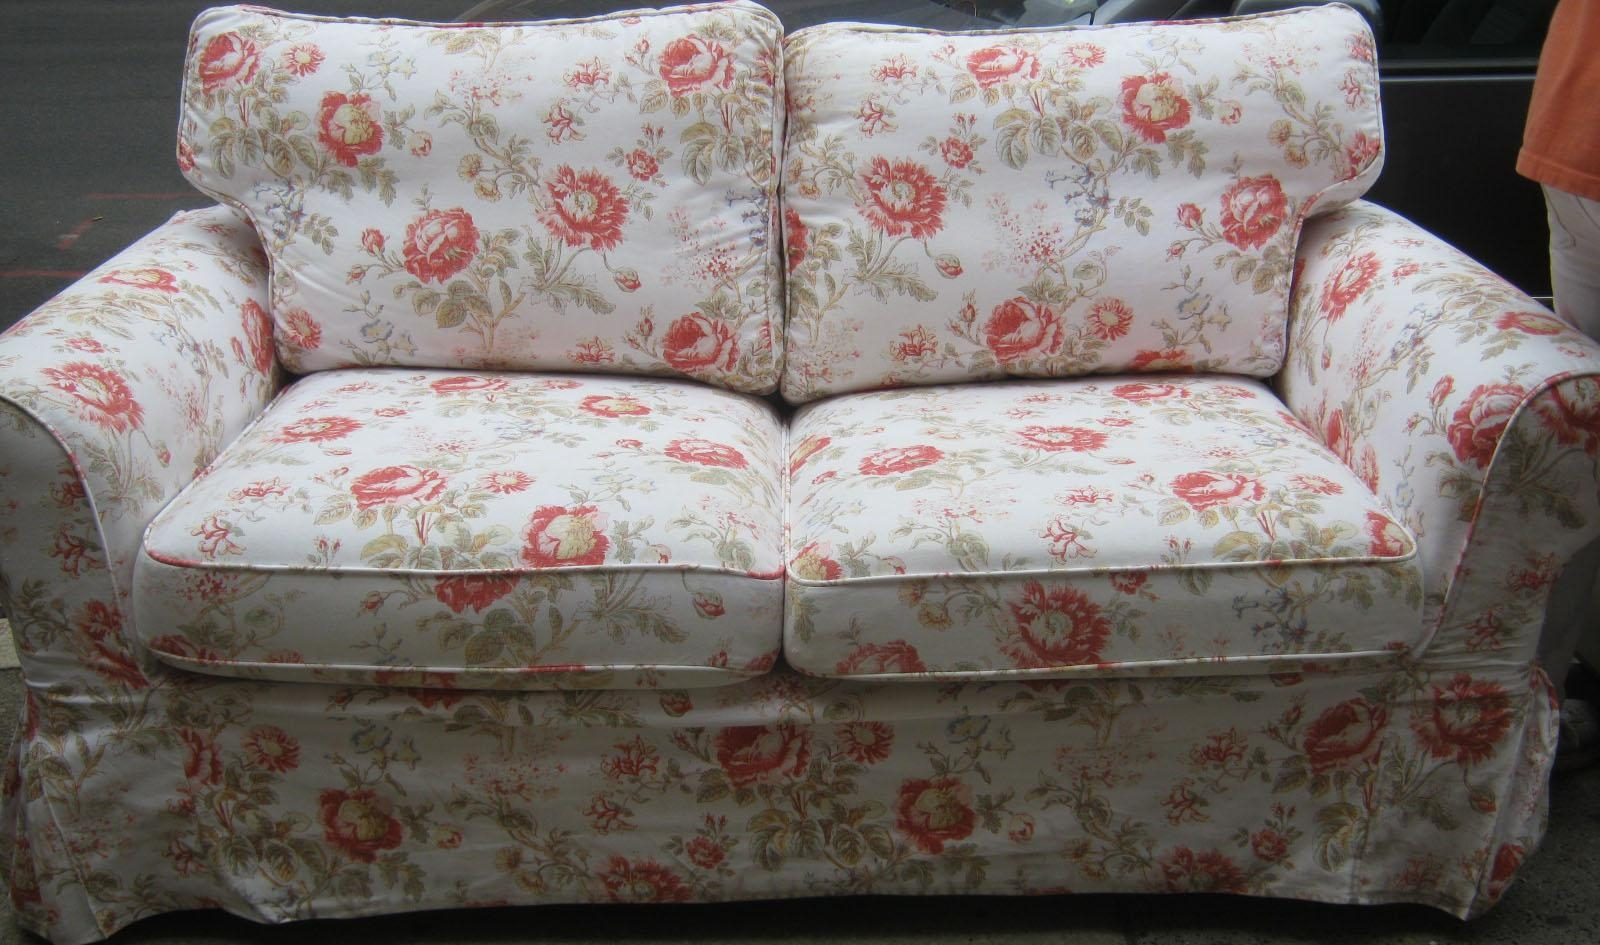 Floral Sofa Slipcovers With Design Hd Images 28817 | Kengire Regarding Floral Sofa Slipcovers (View 3 of 20)